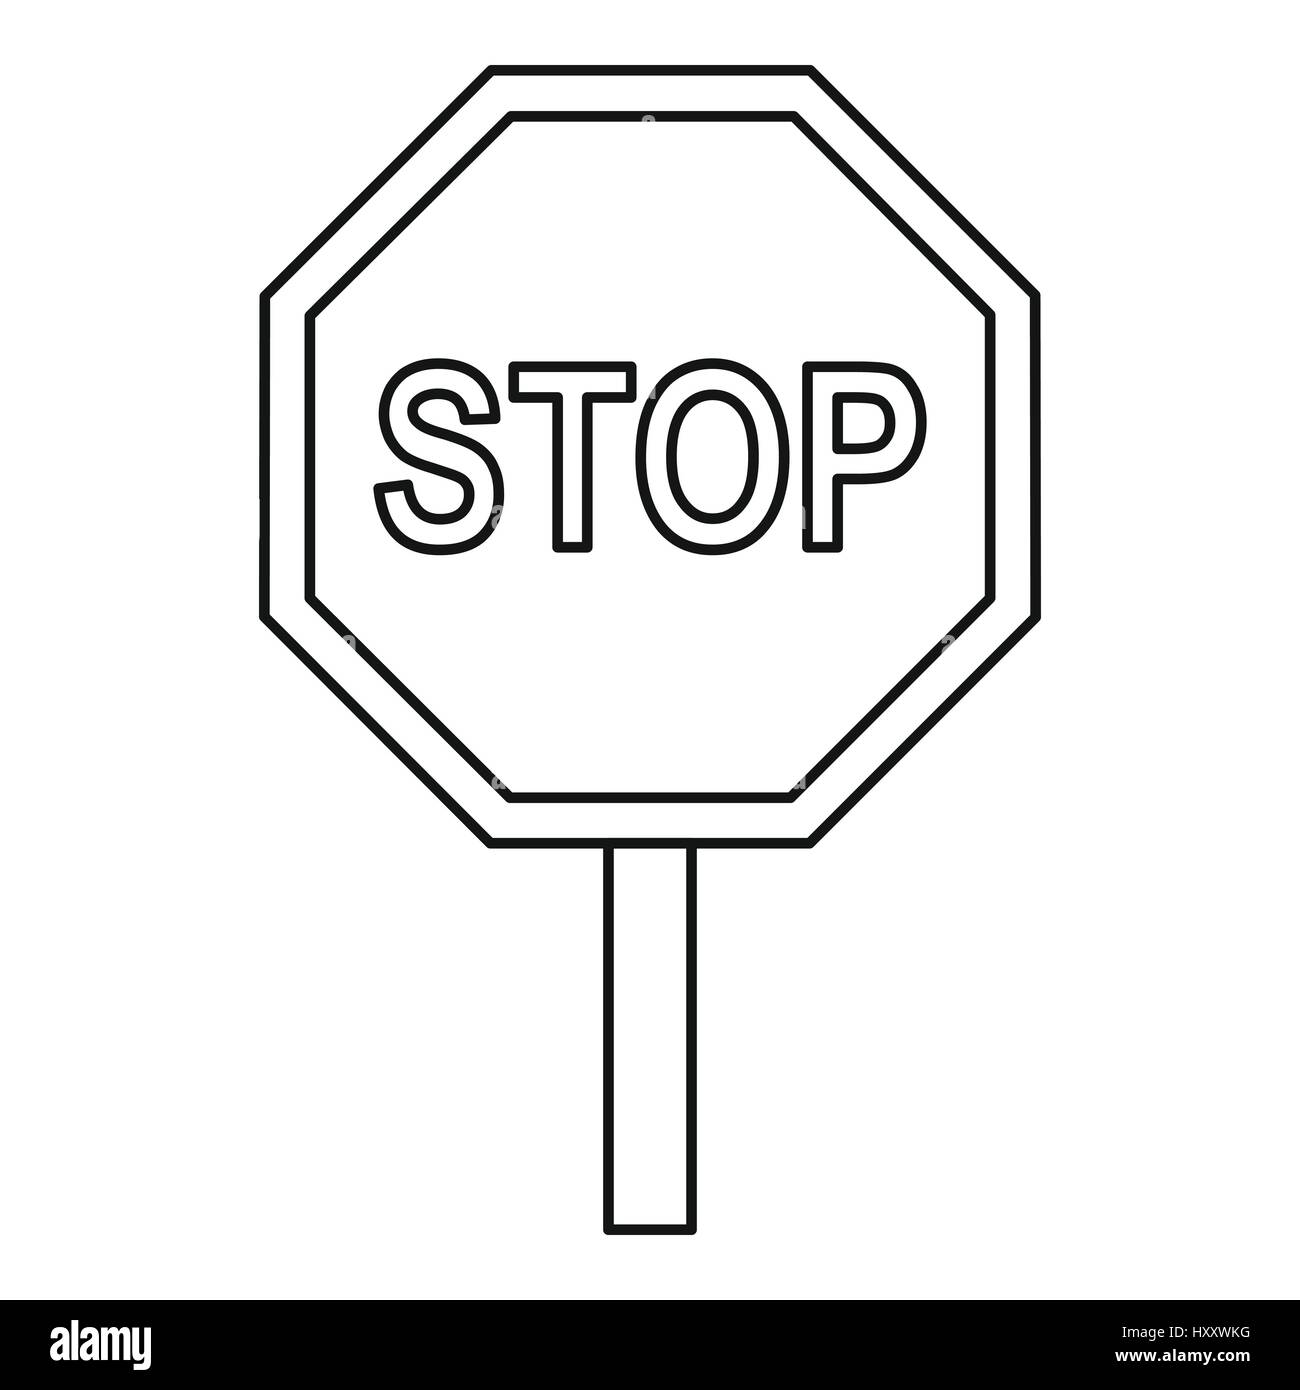 Stop traffic sign icon, outline style Stock Vector Art ...